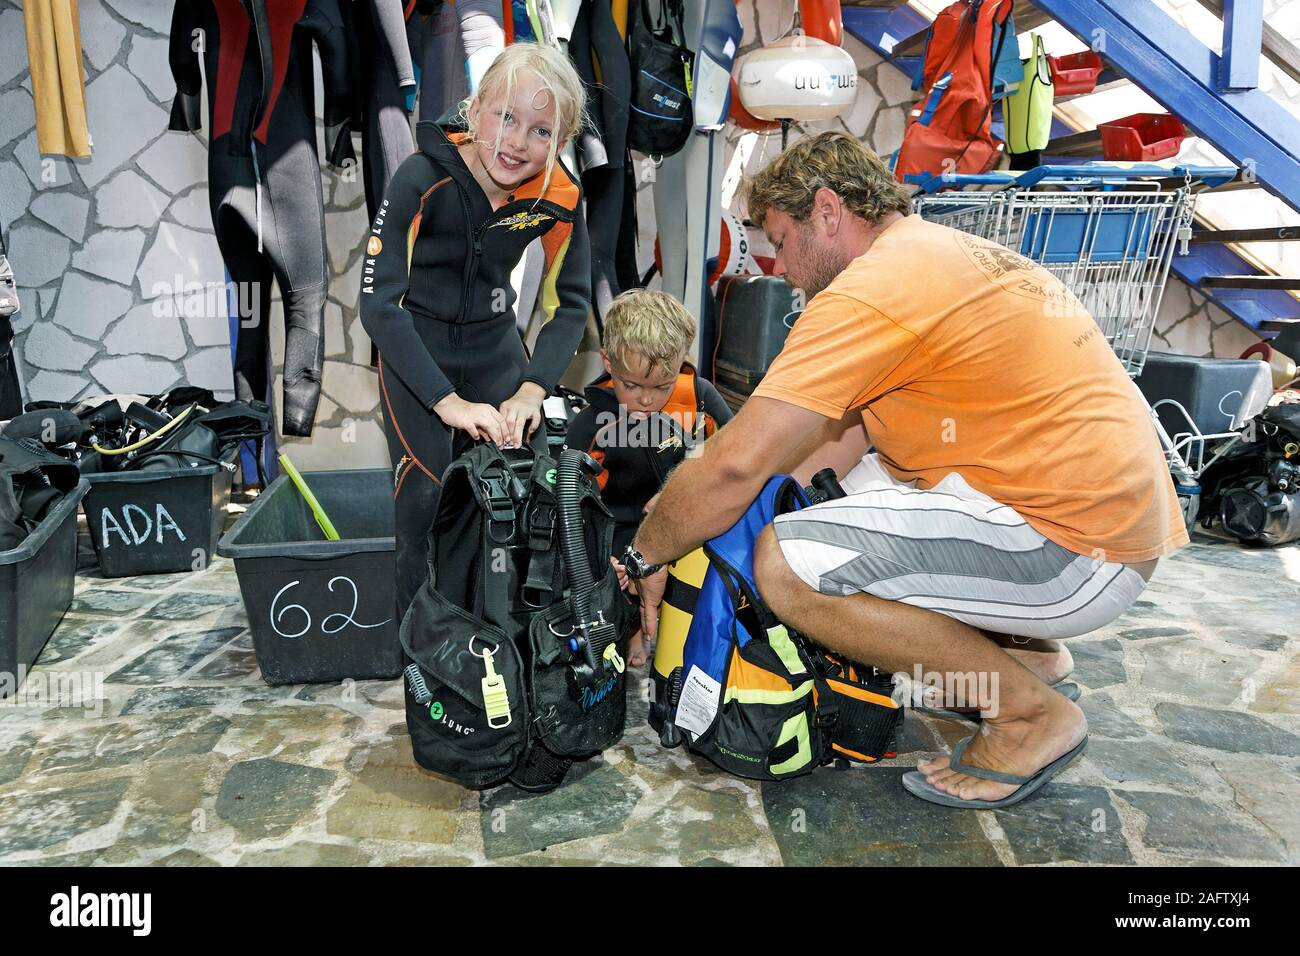 Children discover scuba diving, scuba instructor helps children to prepare diving equipment, Zakynthos island, Greece Stock Photo